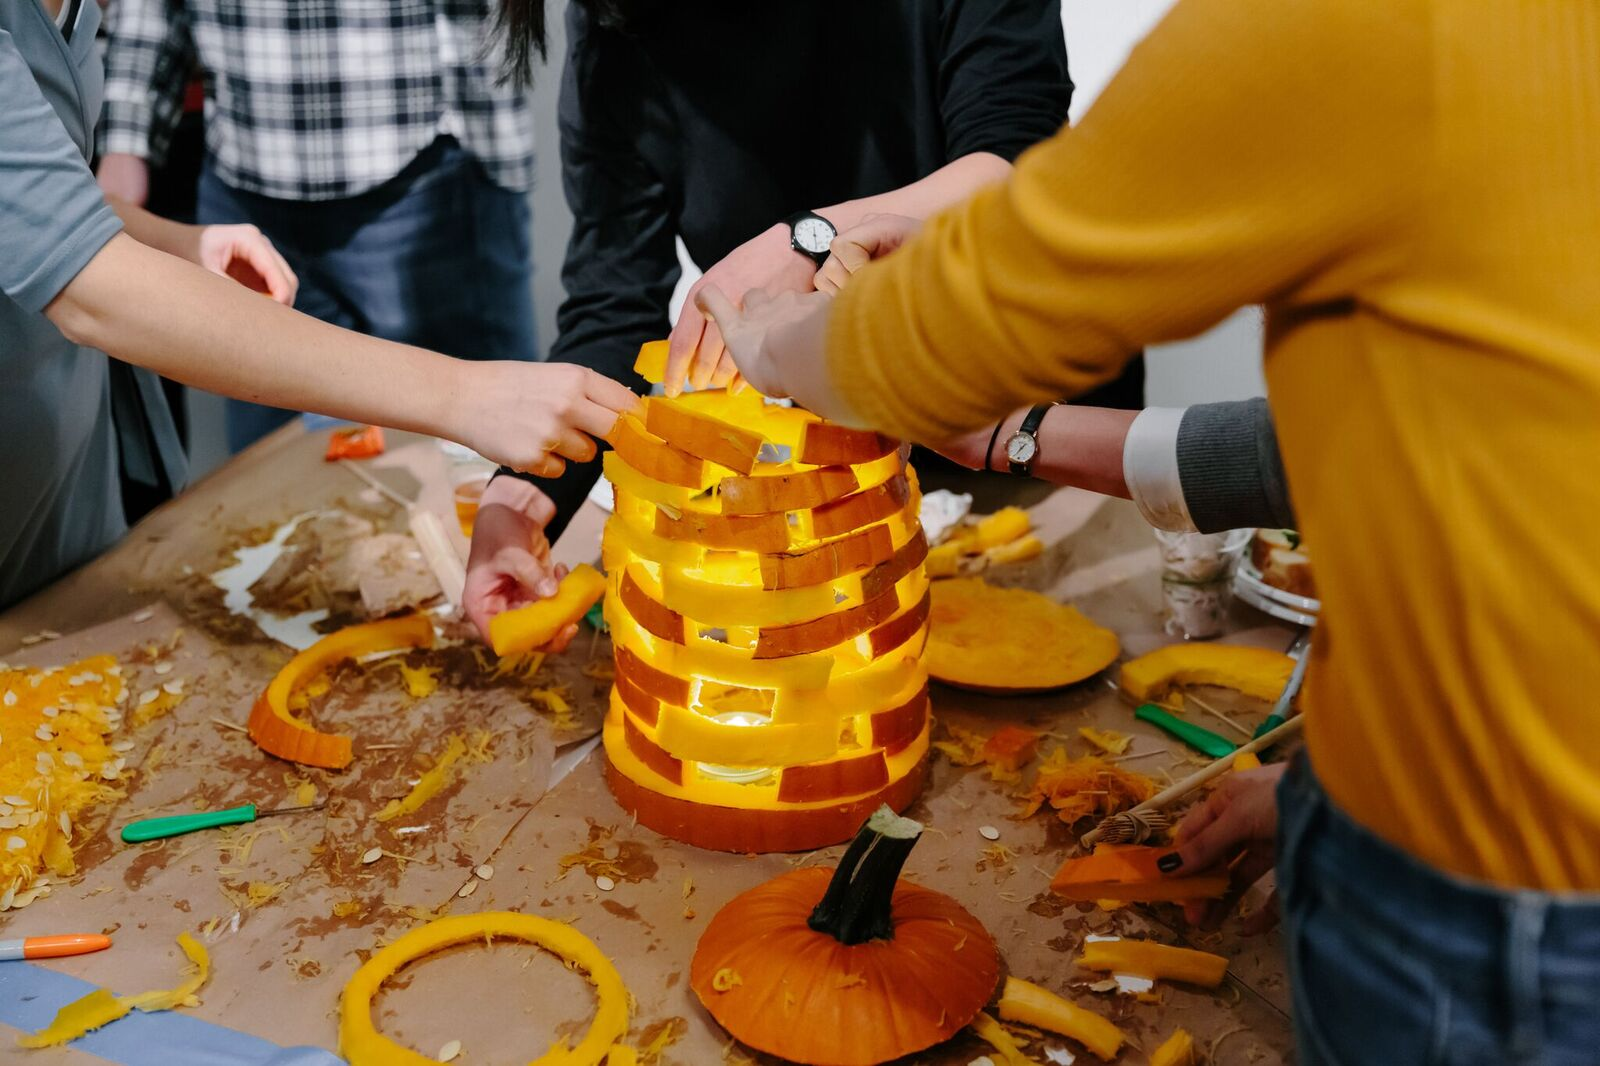 archtober, events, architecture, center for architecture